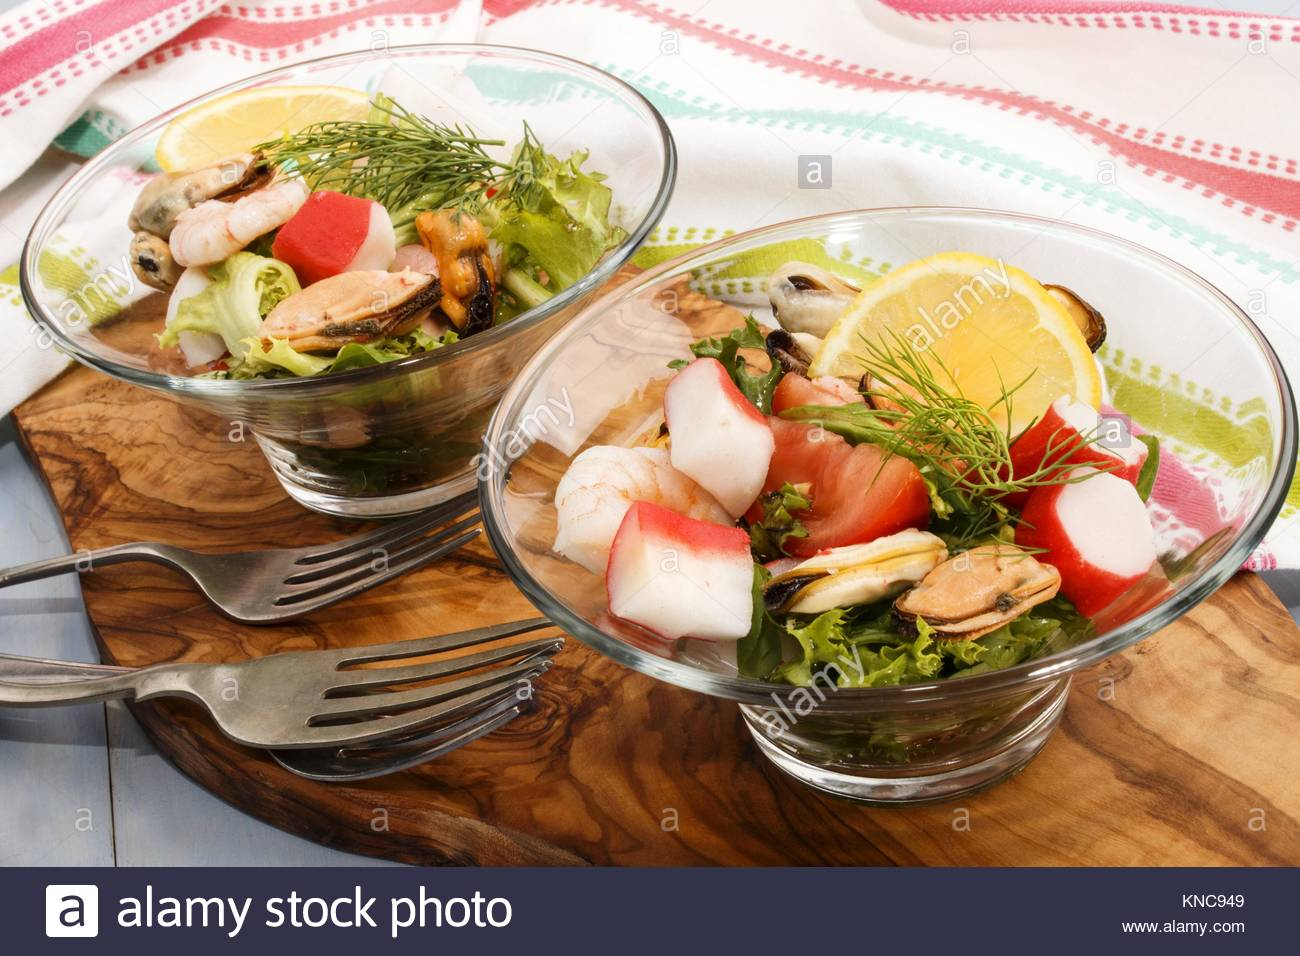 cold fresh seefood slalad, fine dinning with healthy food. - Stock Image